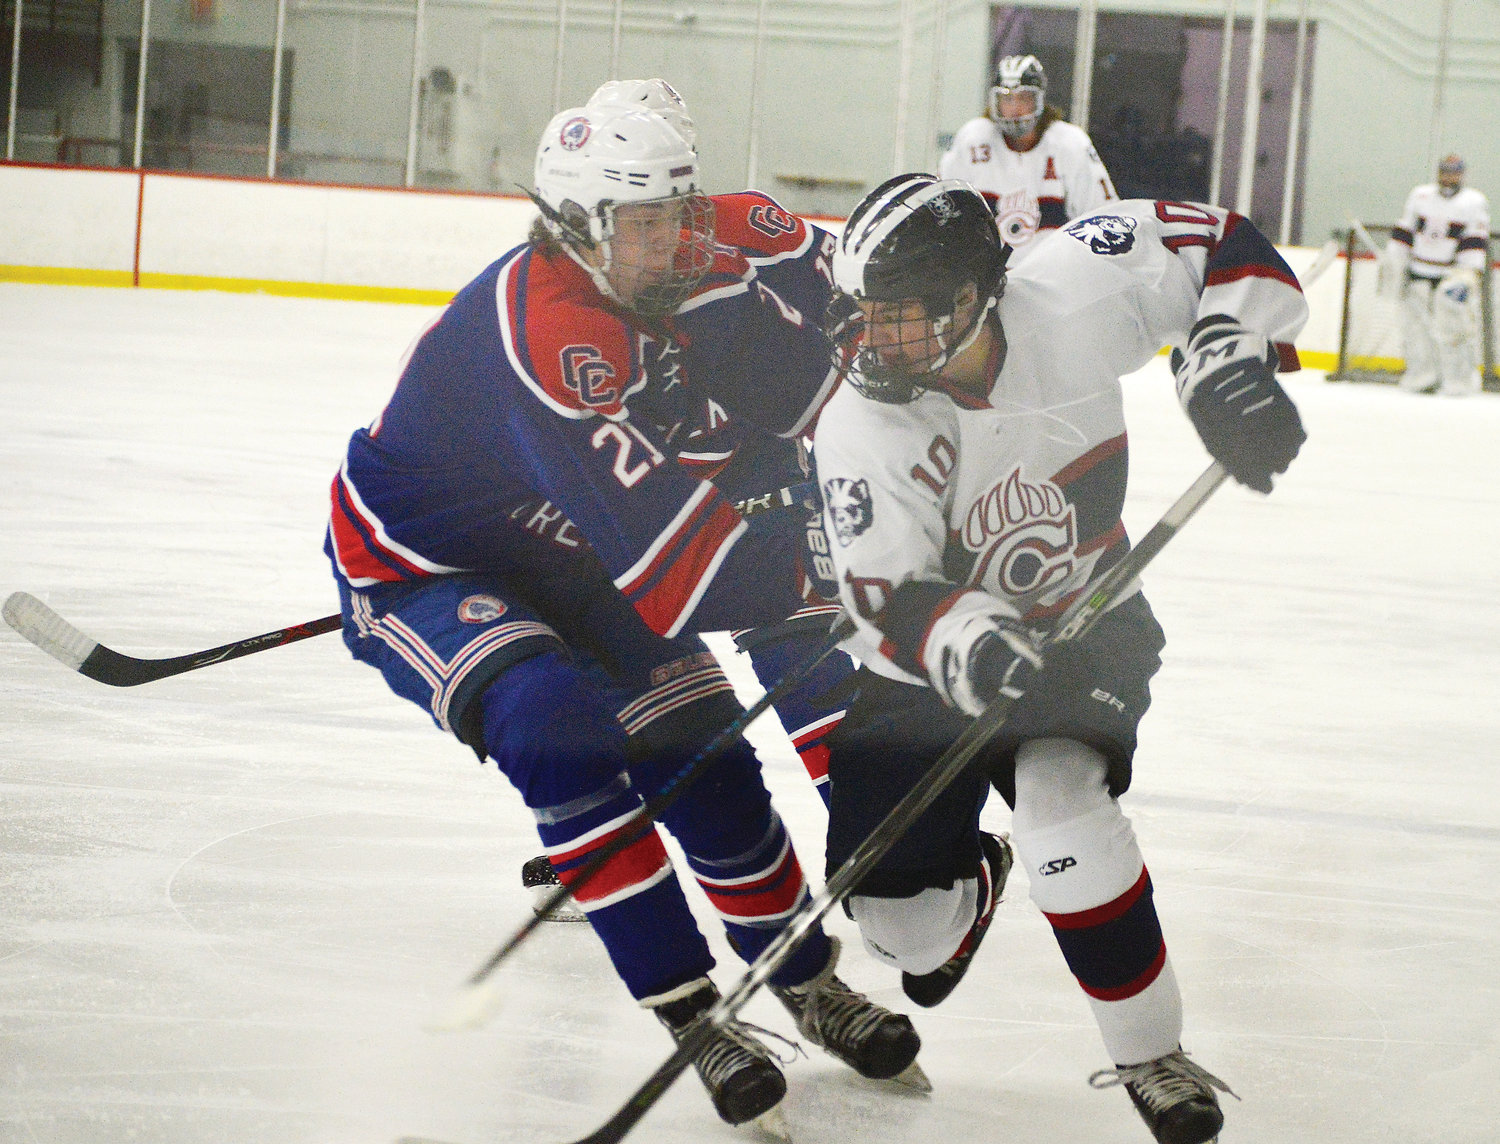 Cherry Creek defenseman T.J. Ranone (21) tries to knock Chaparral's Dylan Florit (10) away from the puck during the Dec. 21 game at Family Sports Center.  Florit had a goal and assist in the Wolverines' 3-1 victory.